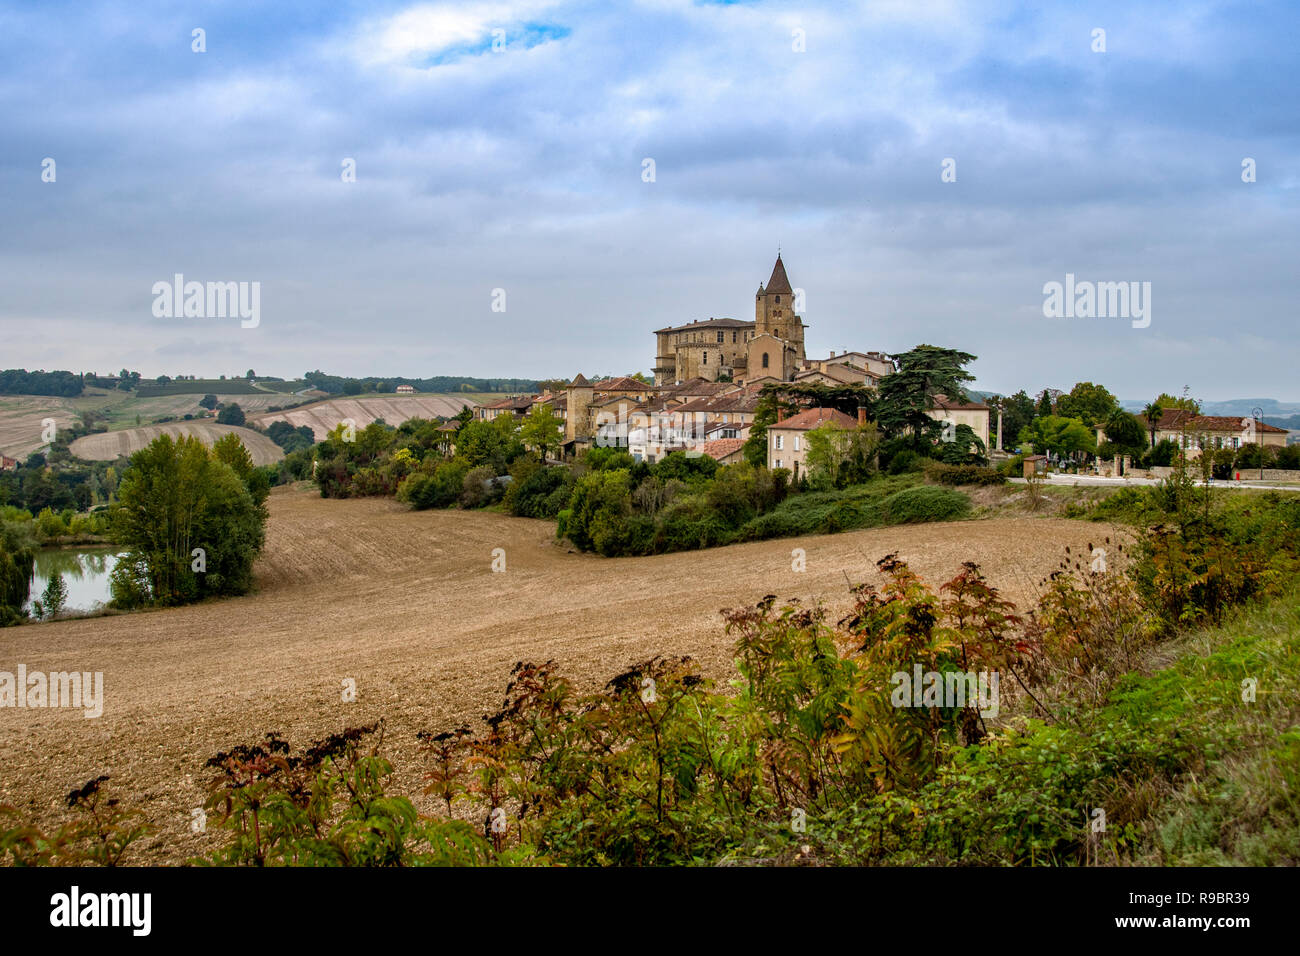 France. Gers (32). Lavardens. Most beautiful village of France - Stock Image